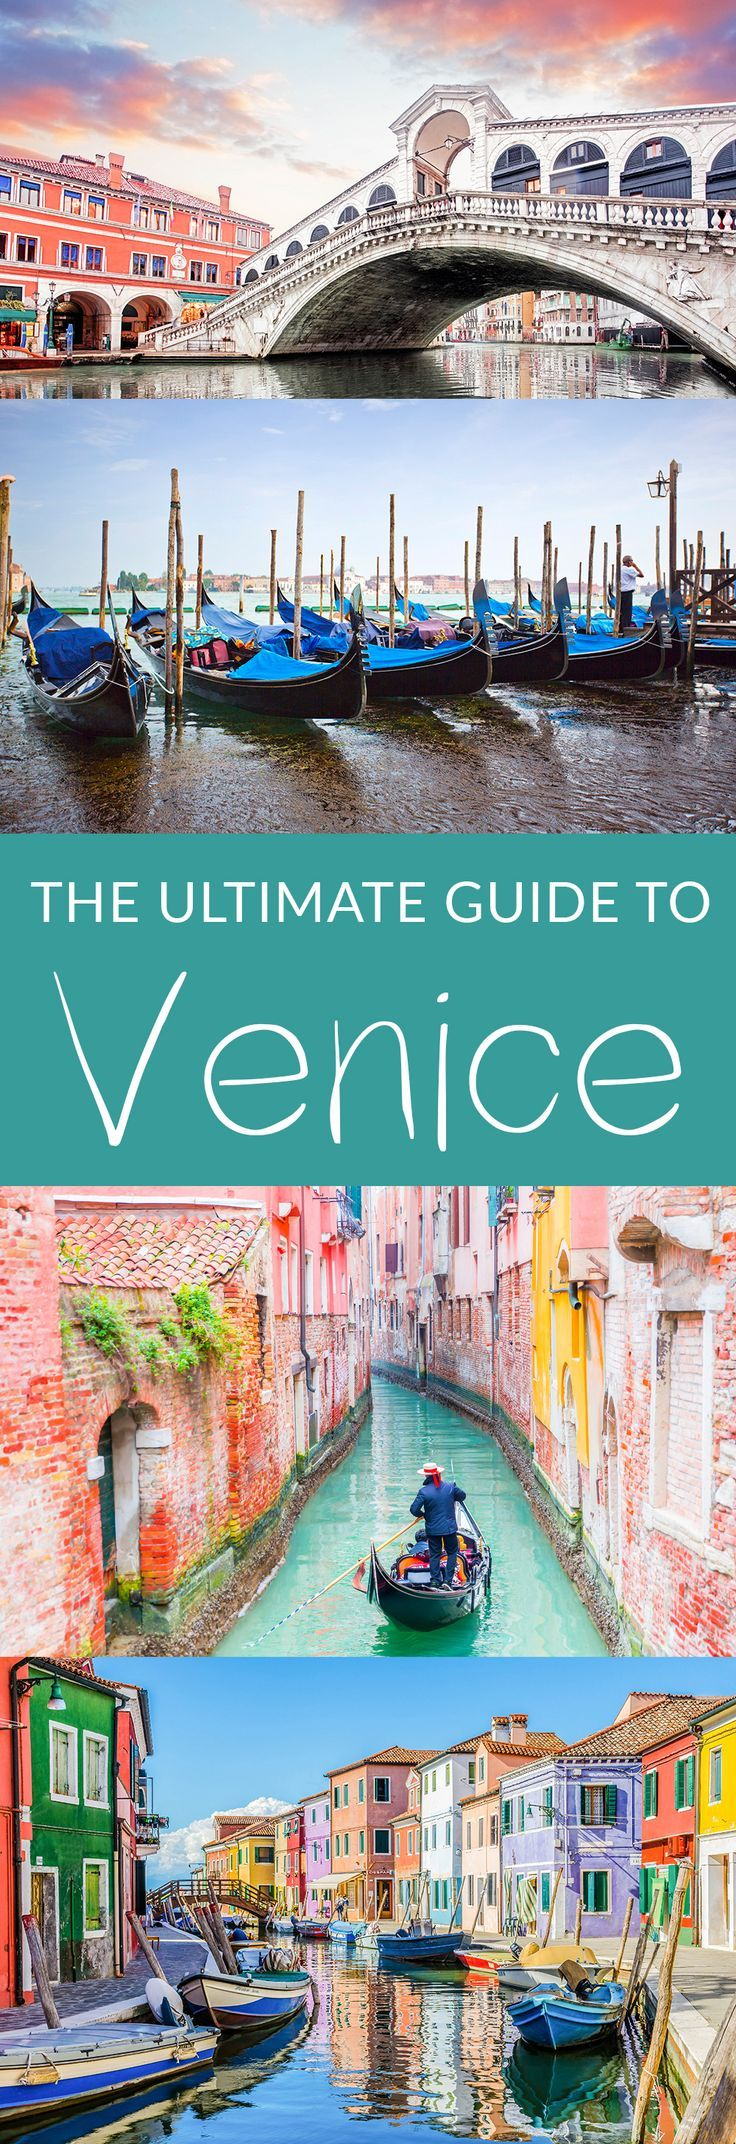 The Ultimate Guide to Venice. Everything you need to know about visiting the city on the water. What to do, when to go, what to bring and where to stay. #Venice #Italy #travel